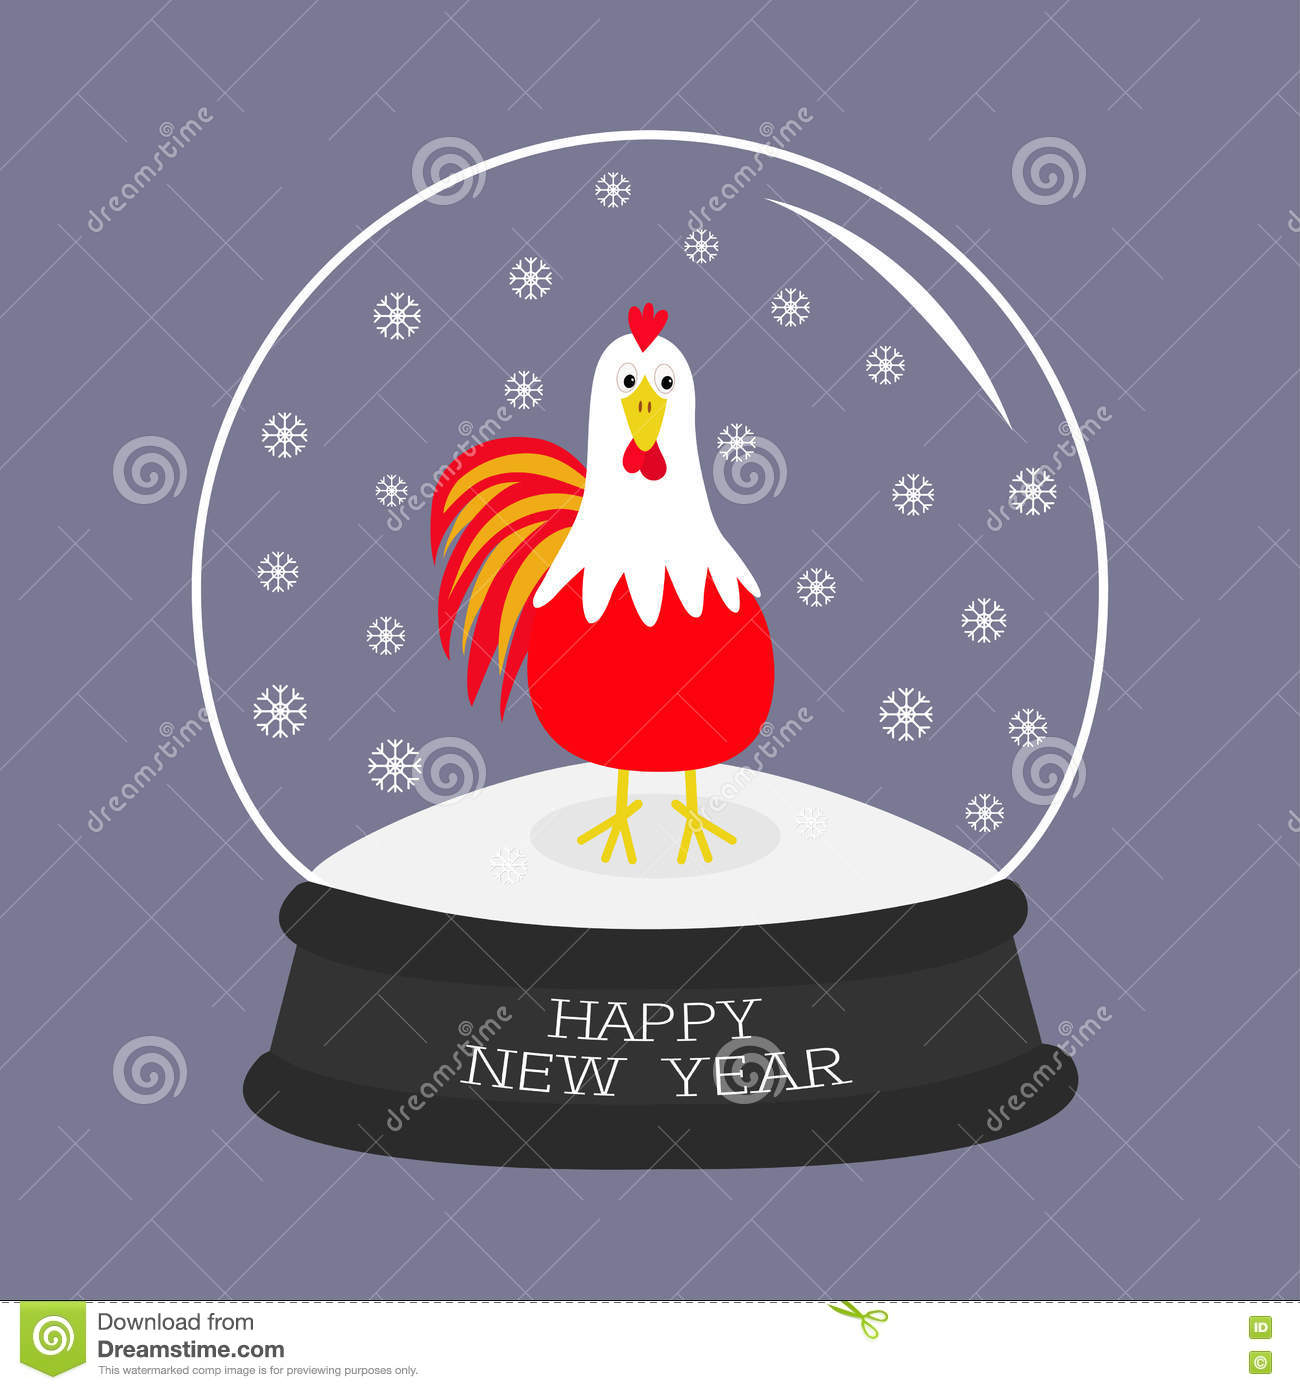 Chinese Calendar Illustration : Chinese new year illustration with cute rooster on red